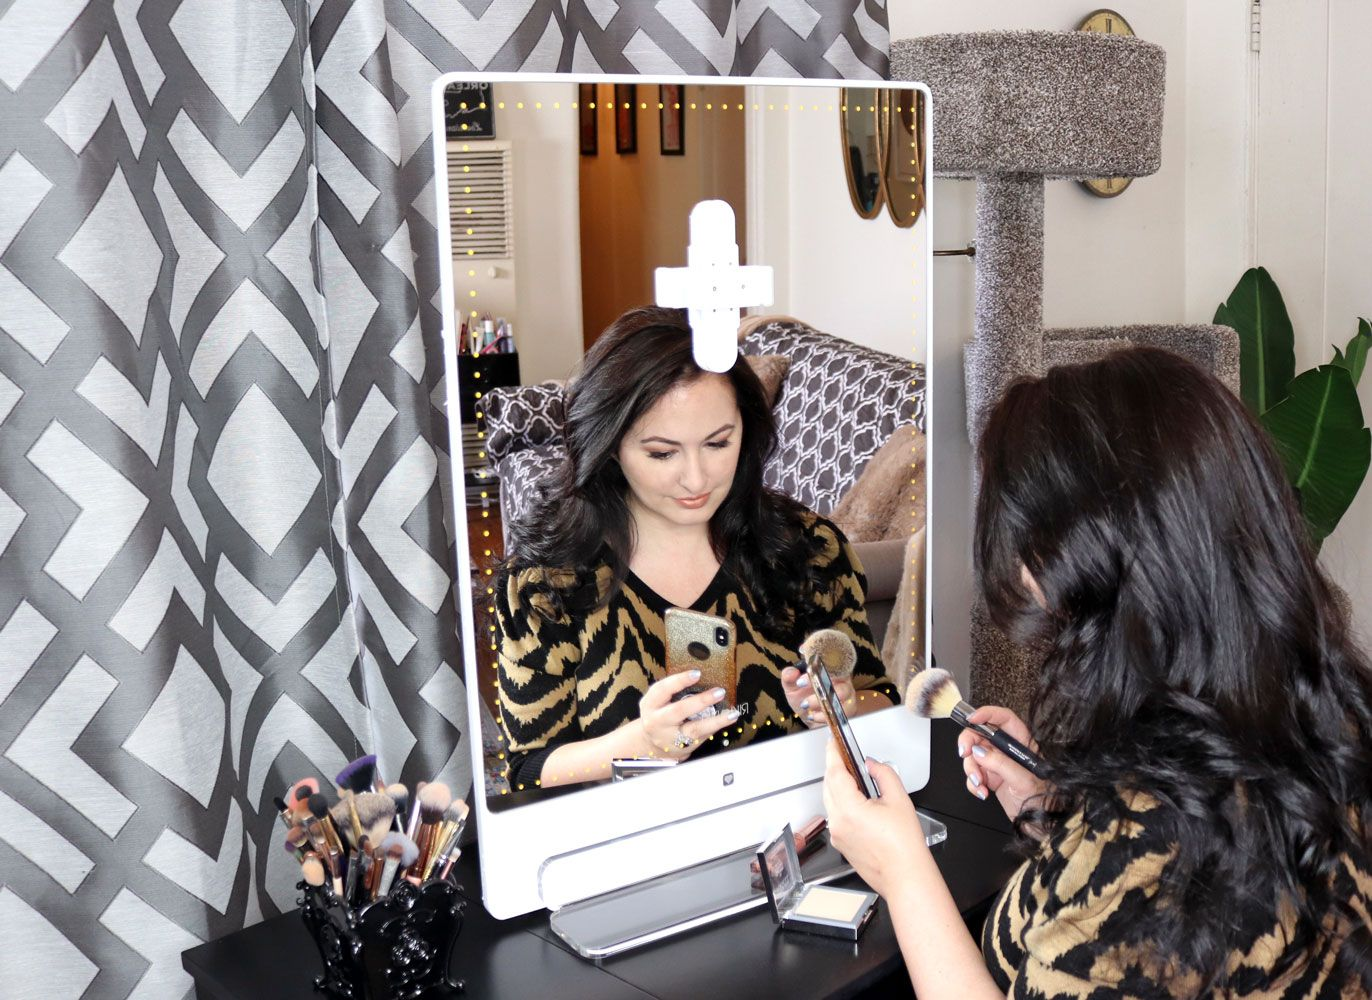 Glamcor Riki Skinny Vs Riki Tall Lighted Selfie Mirrors Review Riki Mirror Beauty Tutorials Videos Makeup Mirror